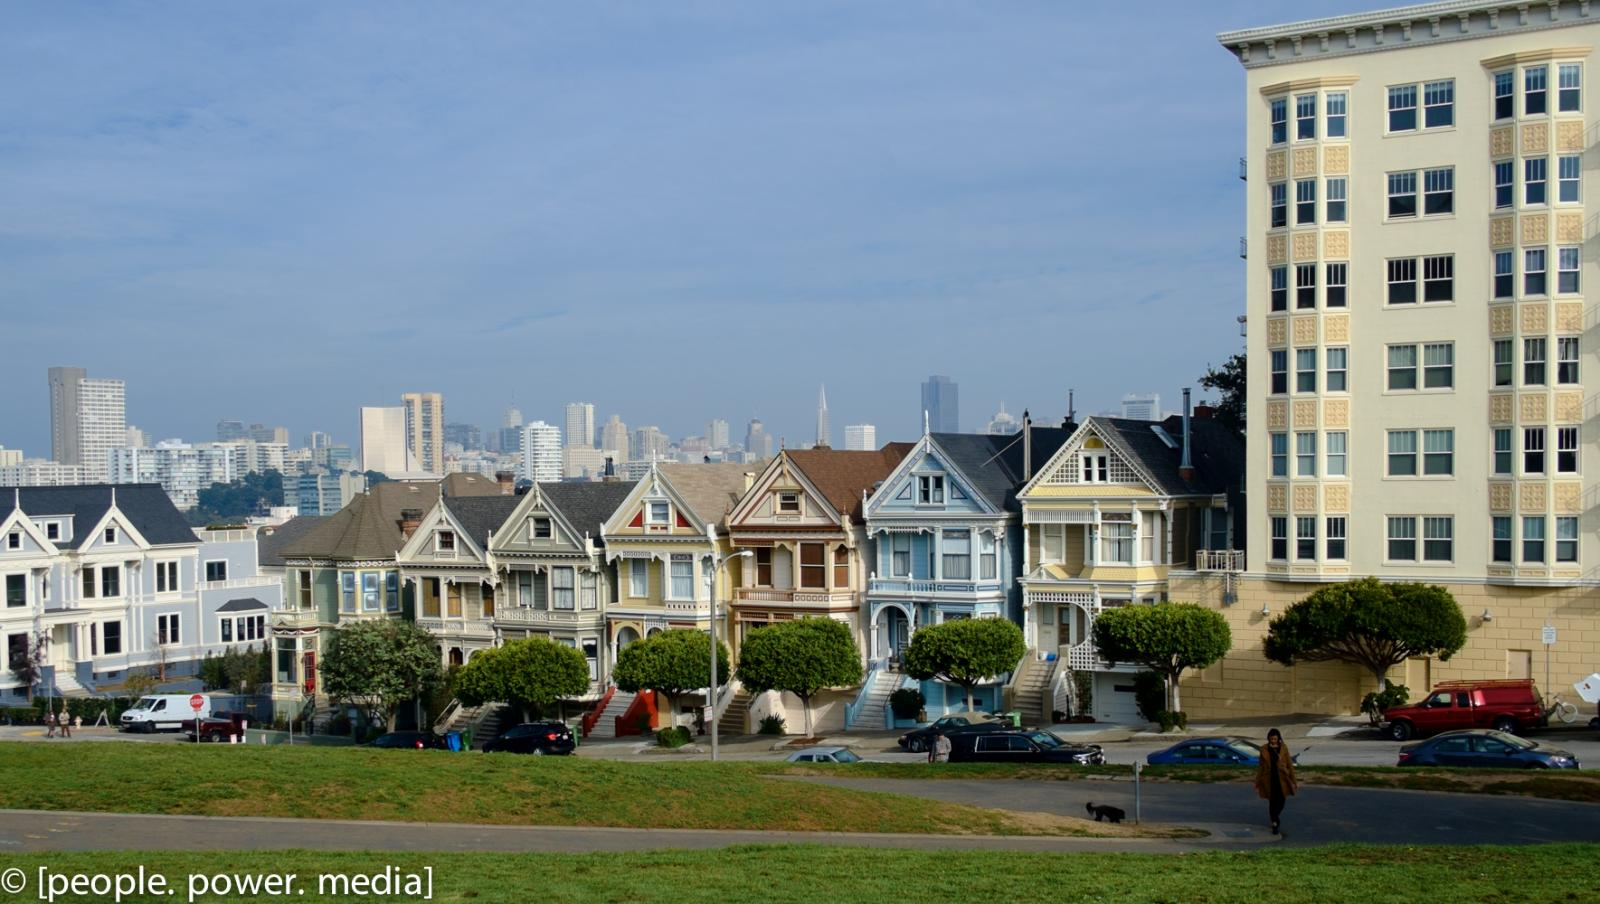 Apartment building beside Painted Ladies houses